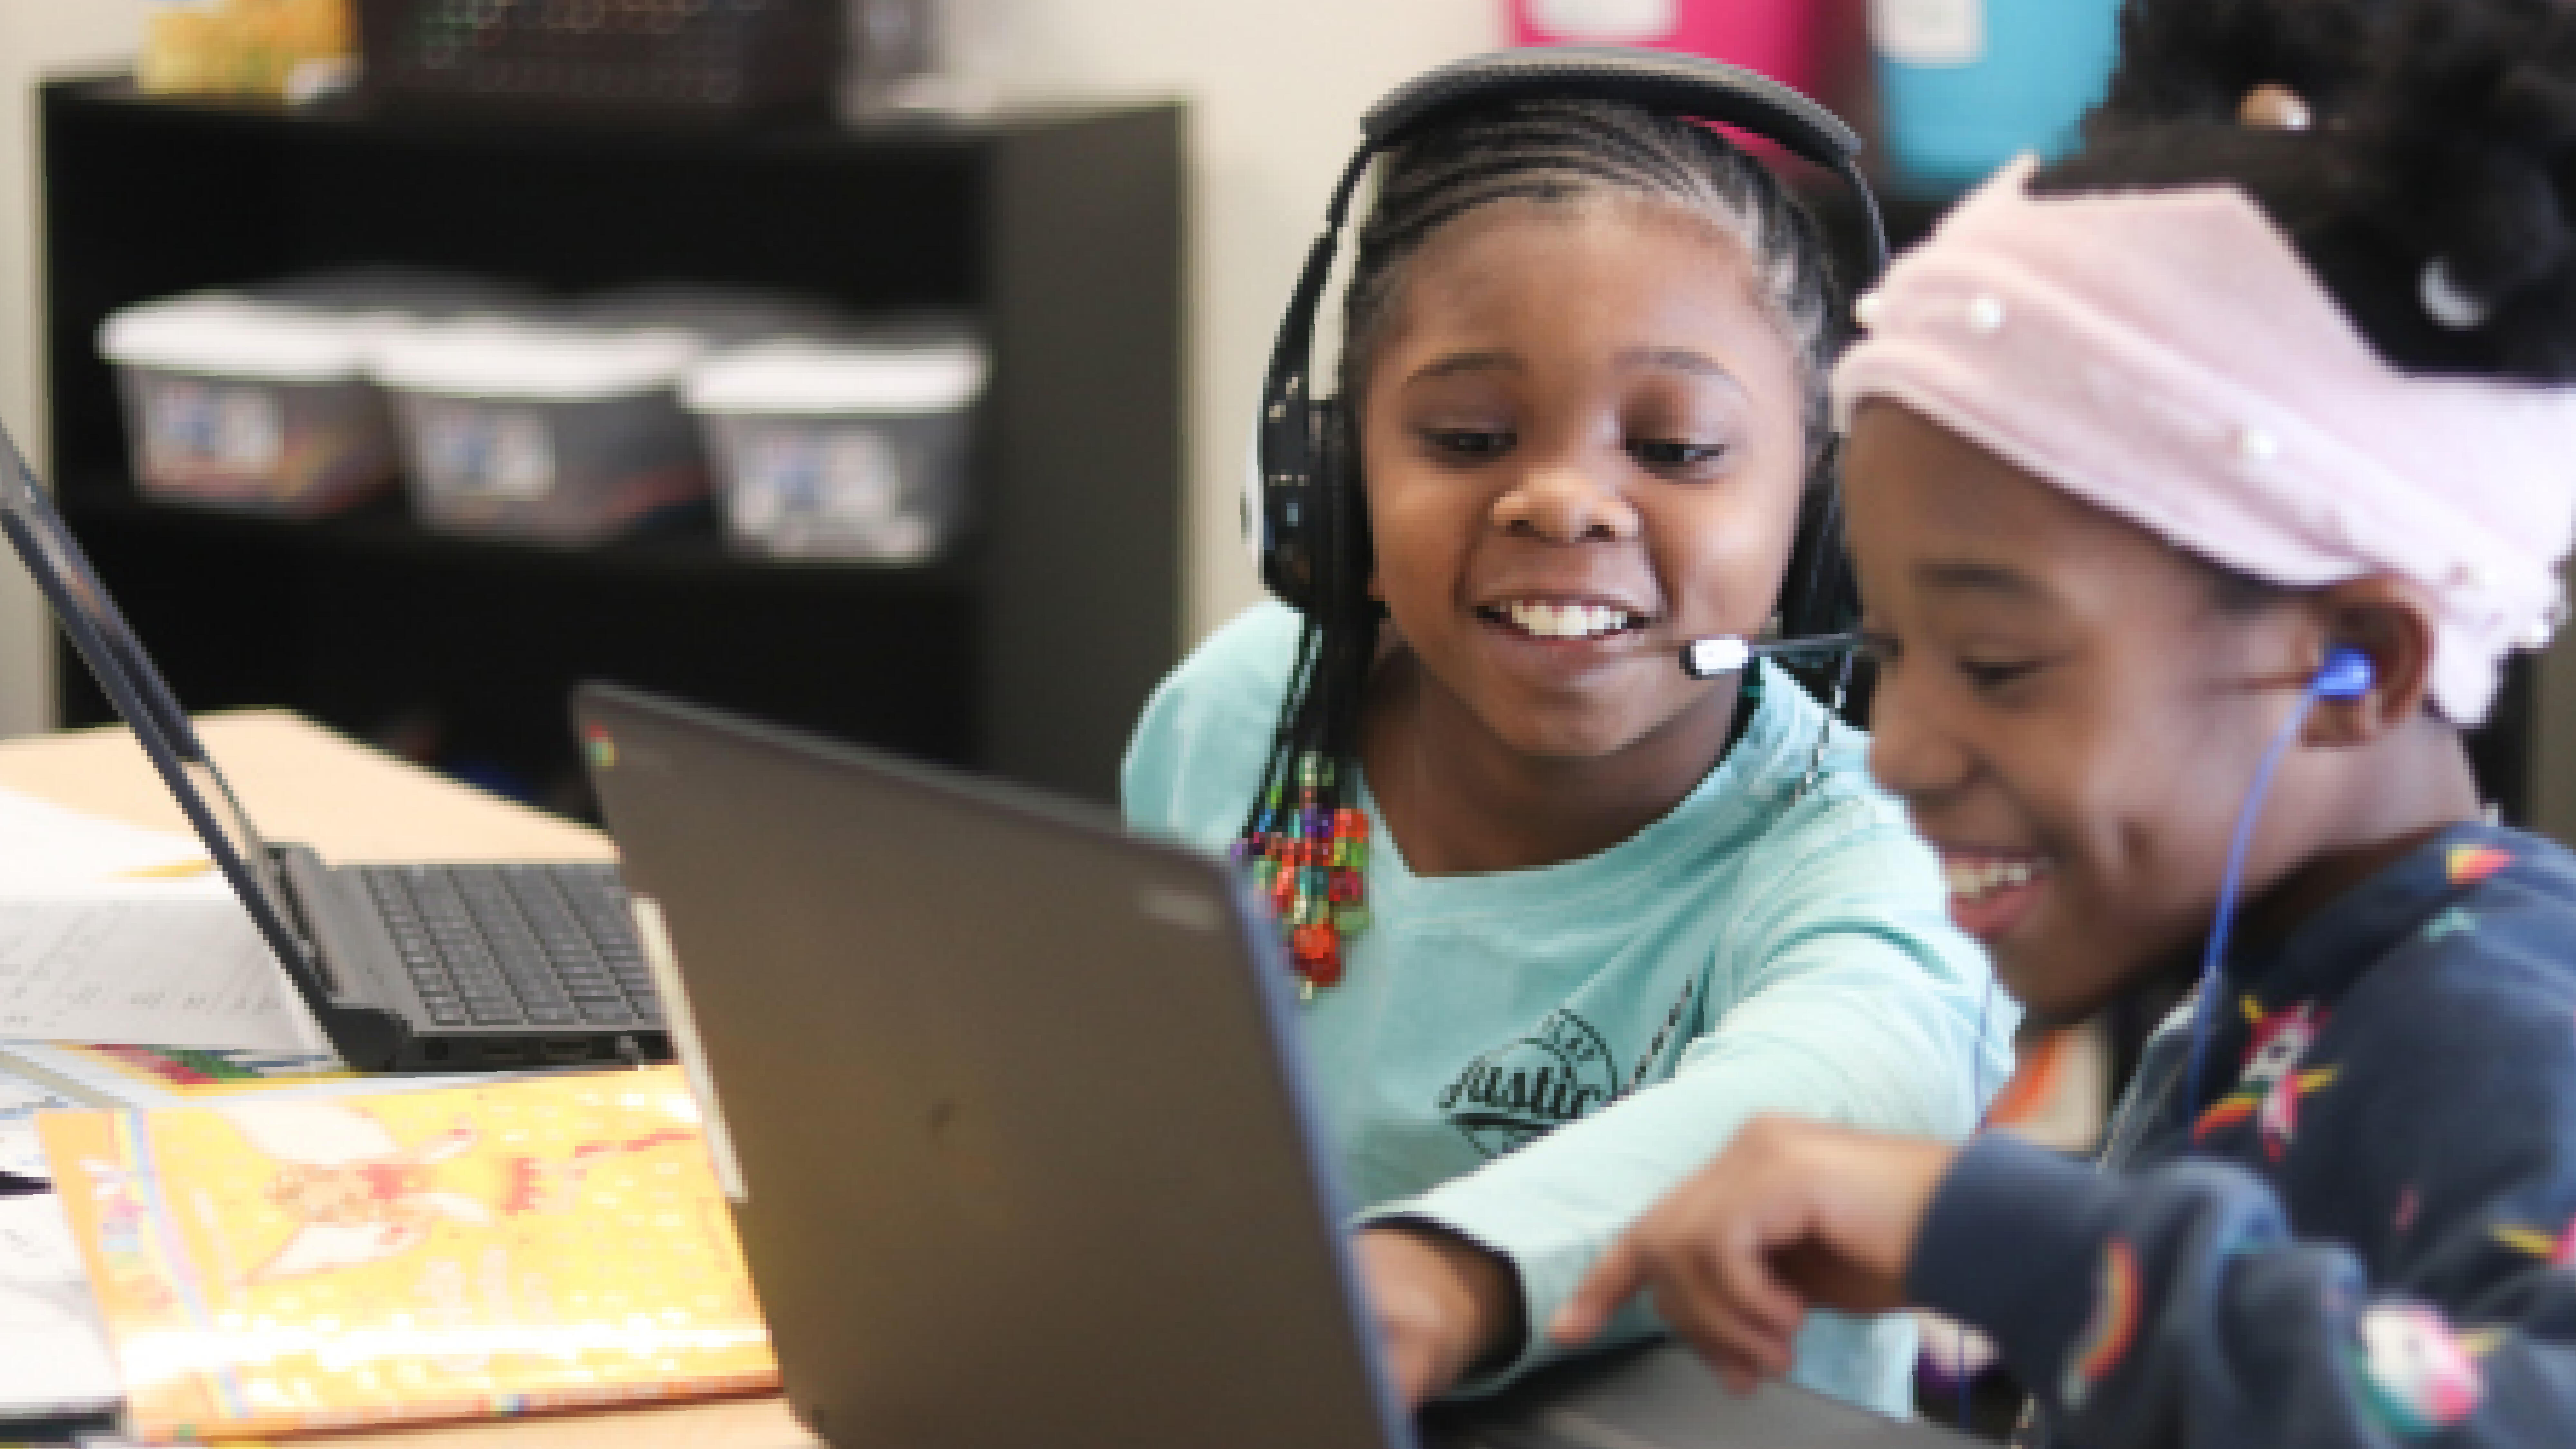 Two female students working collaboratively on a laptop.